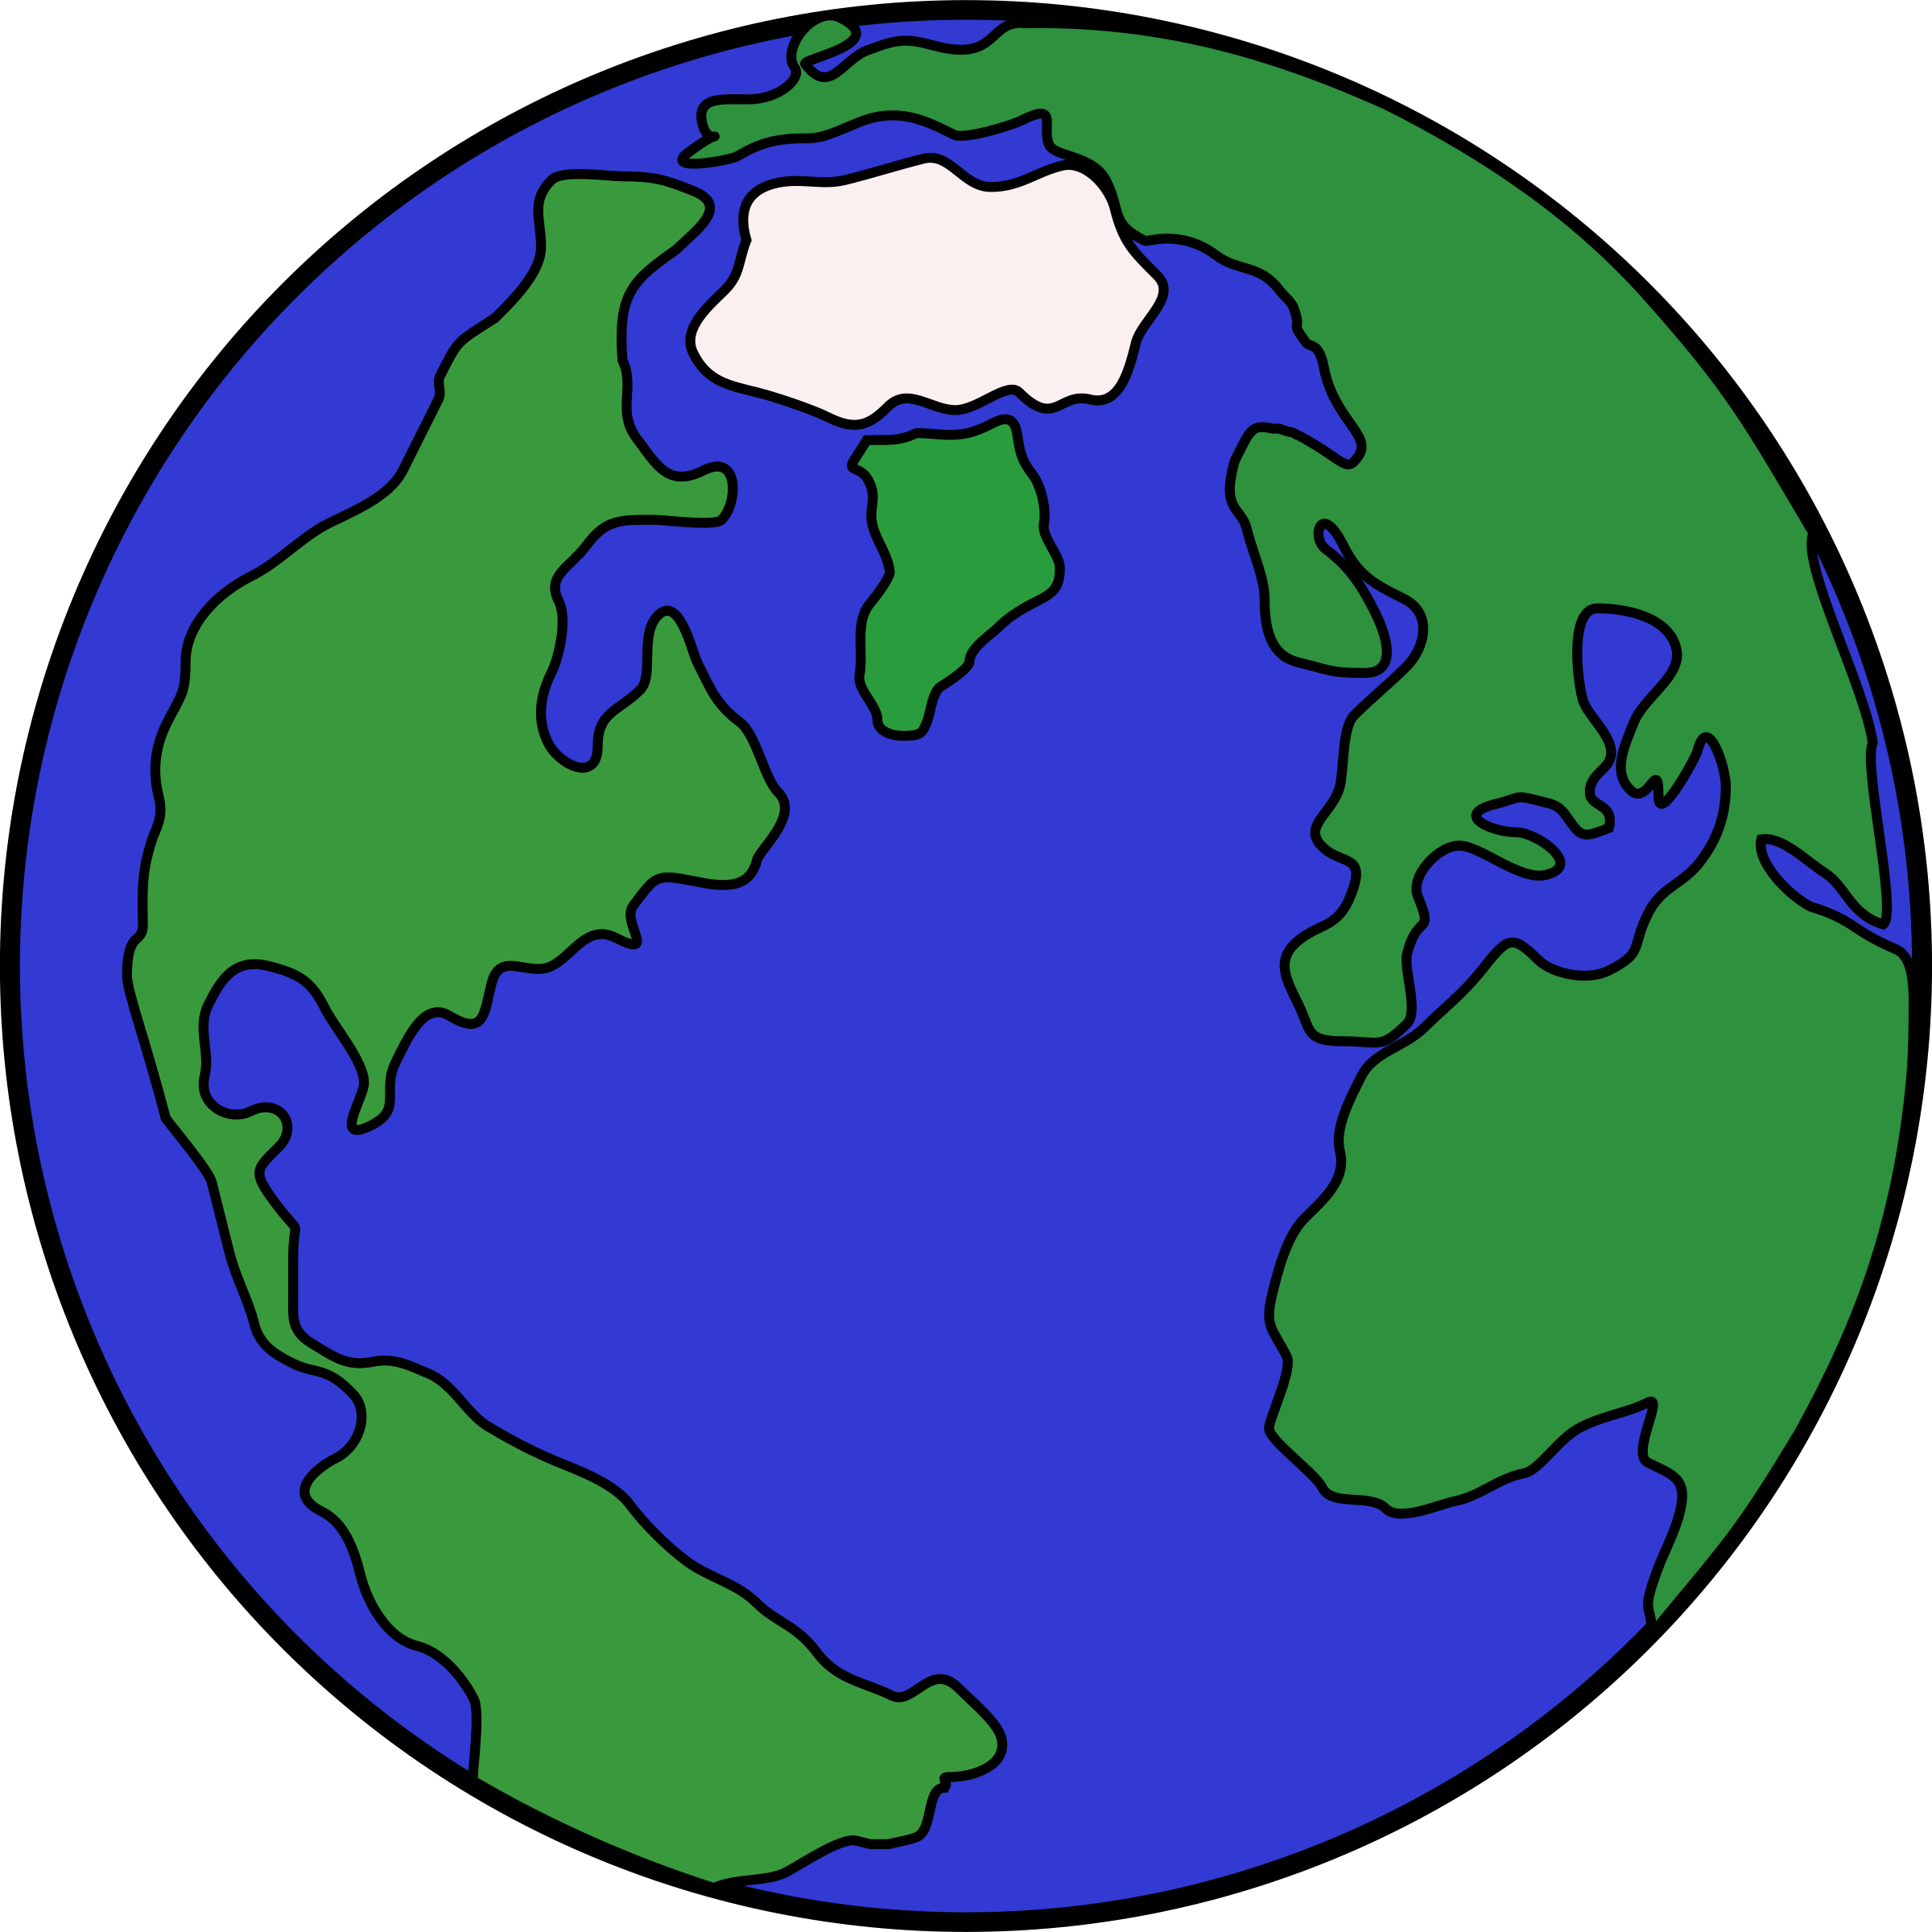 Planet clipart #6, Download drawings